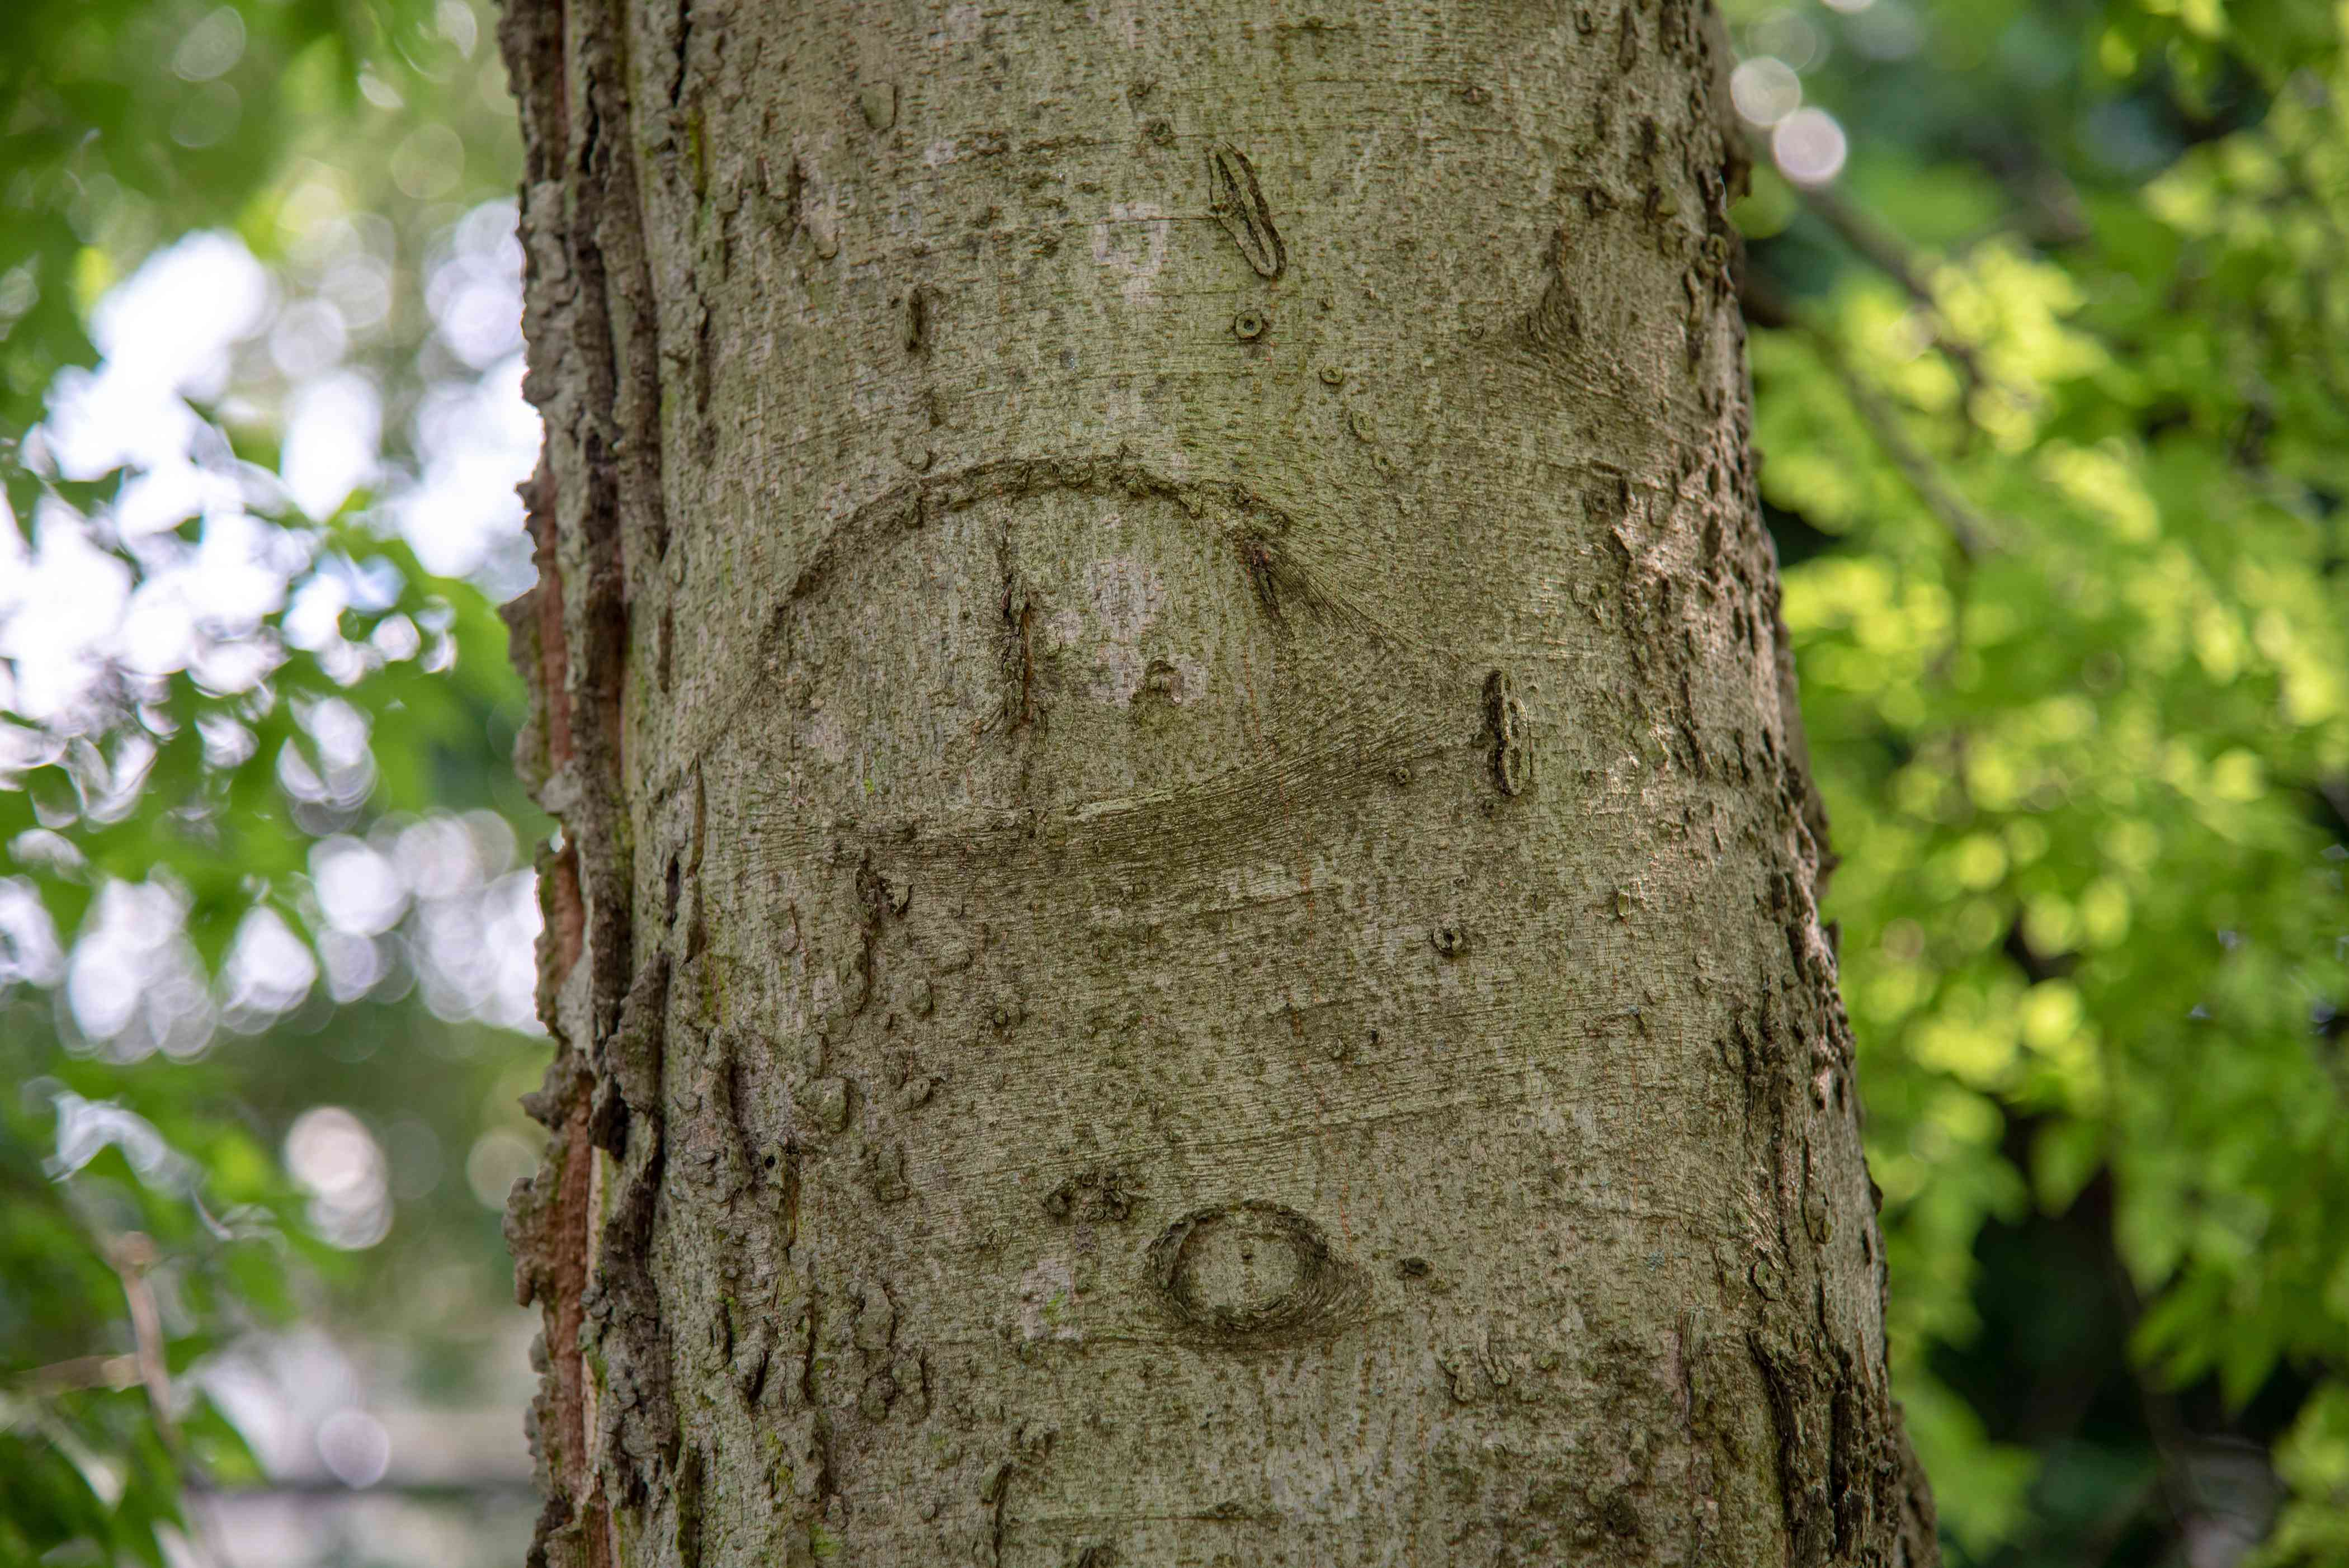 Hackberry tree trunk with cork-like bark with markings closeup